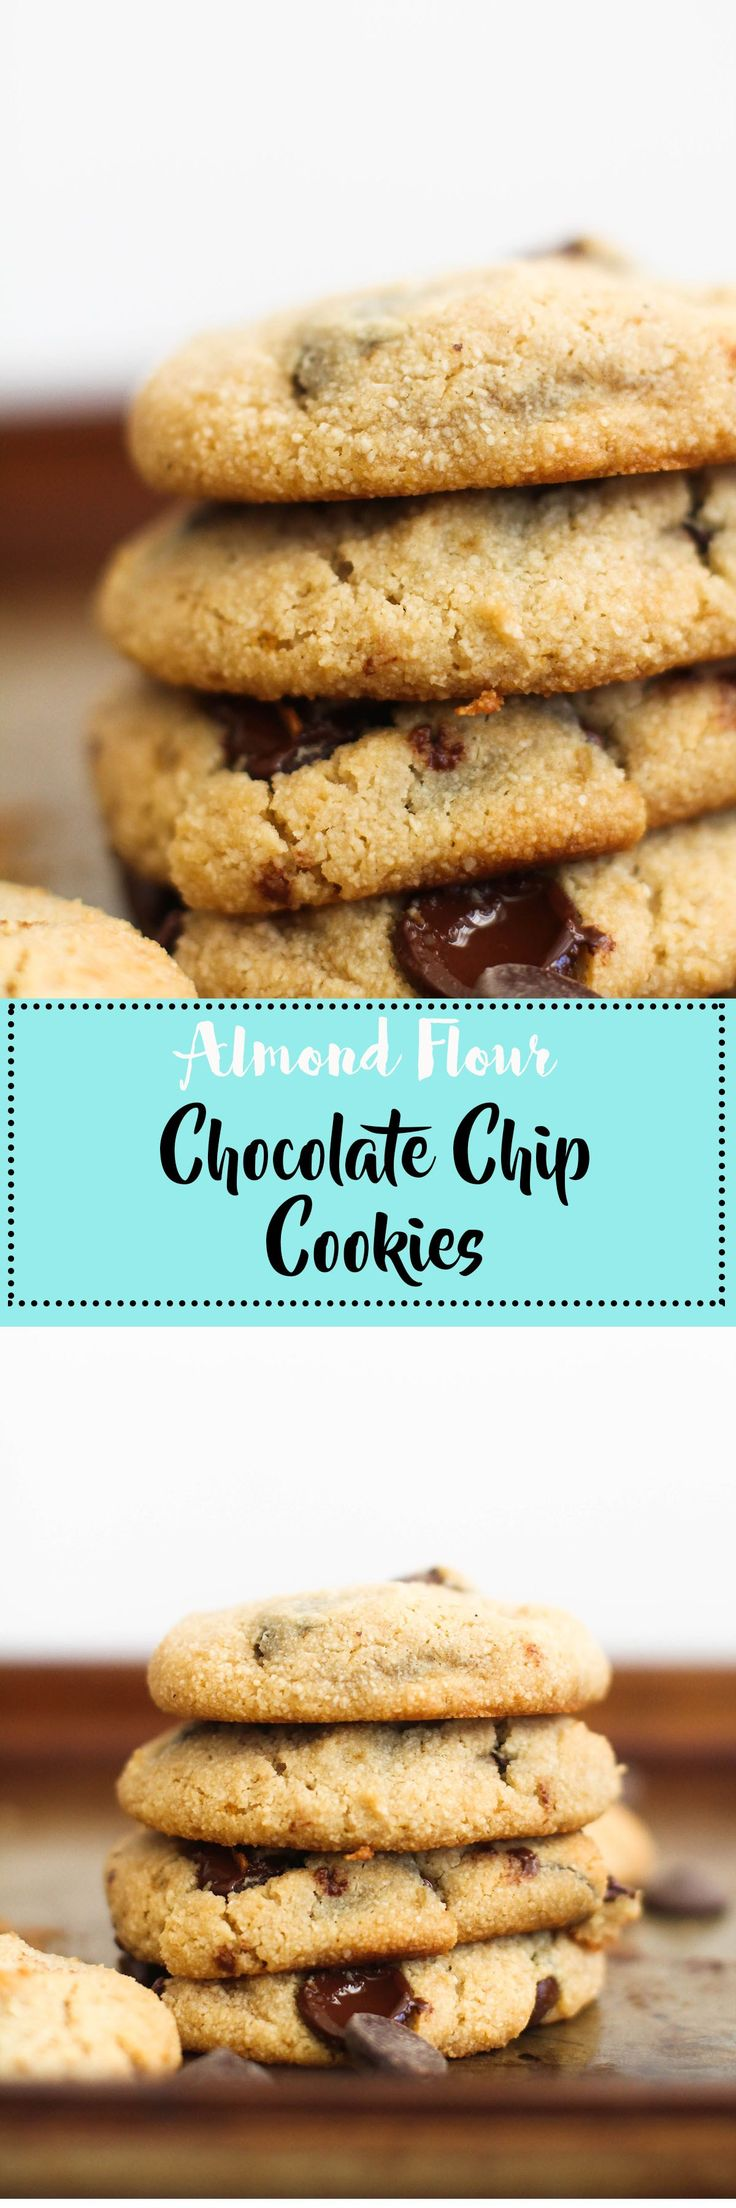 These almond flour chocolate chip cookies are vegan, gluten free, refined sugar free, and absolutely delicious. They're made with easy, natural ingredients and make for a great snack.